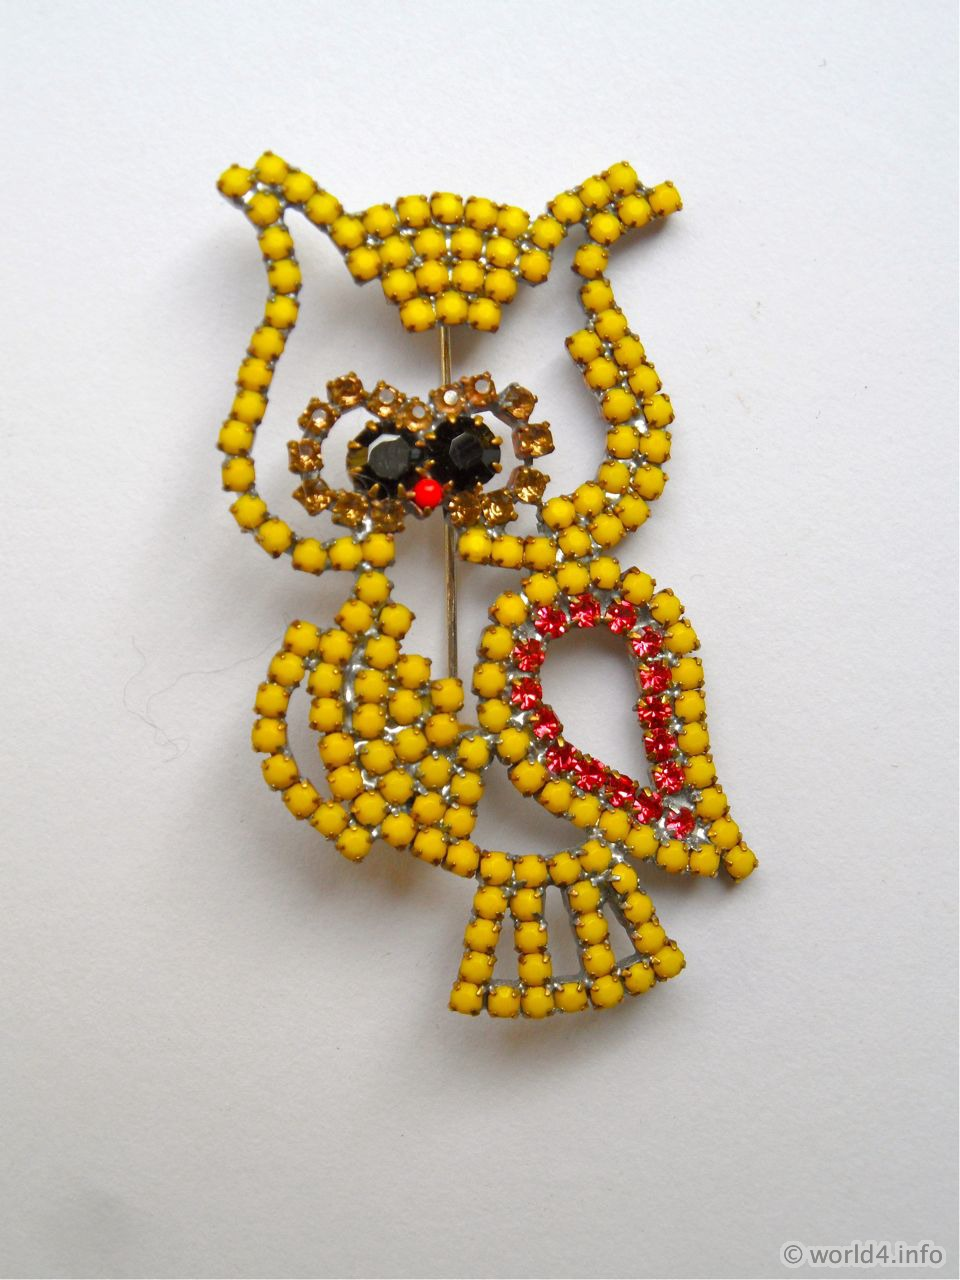 Owl Vintage Rhinestone Brooch. Yellow-Toned Rhinestone Costume Jewelry from Gablonz. Art deco style jewellery.